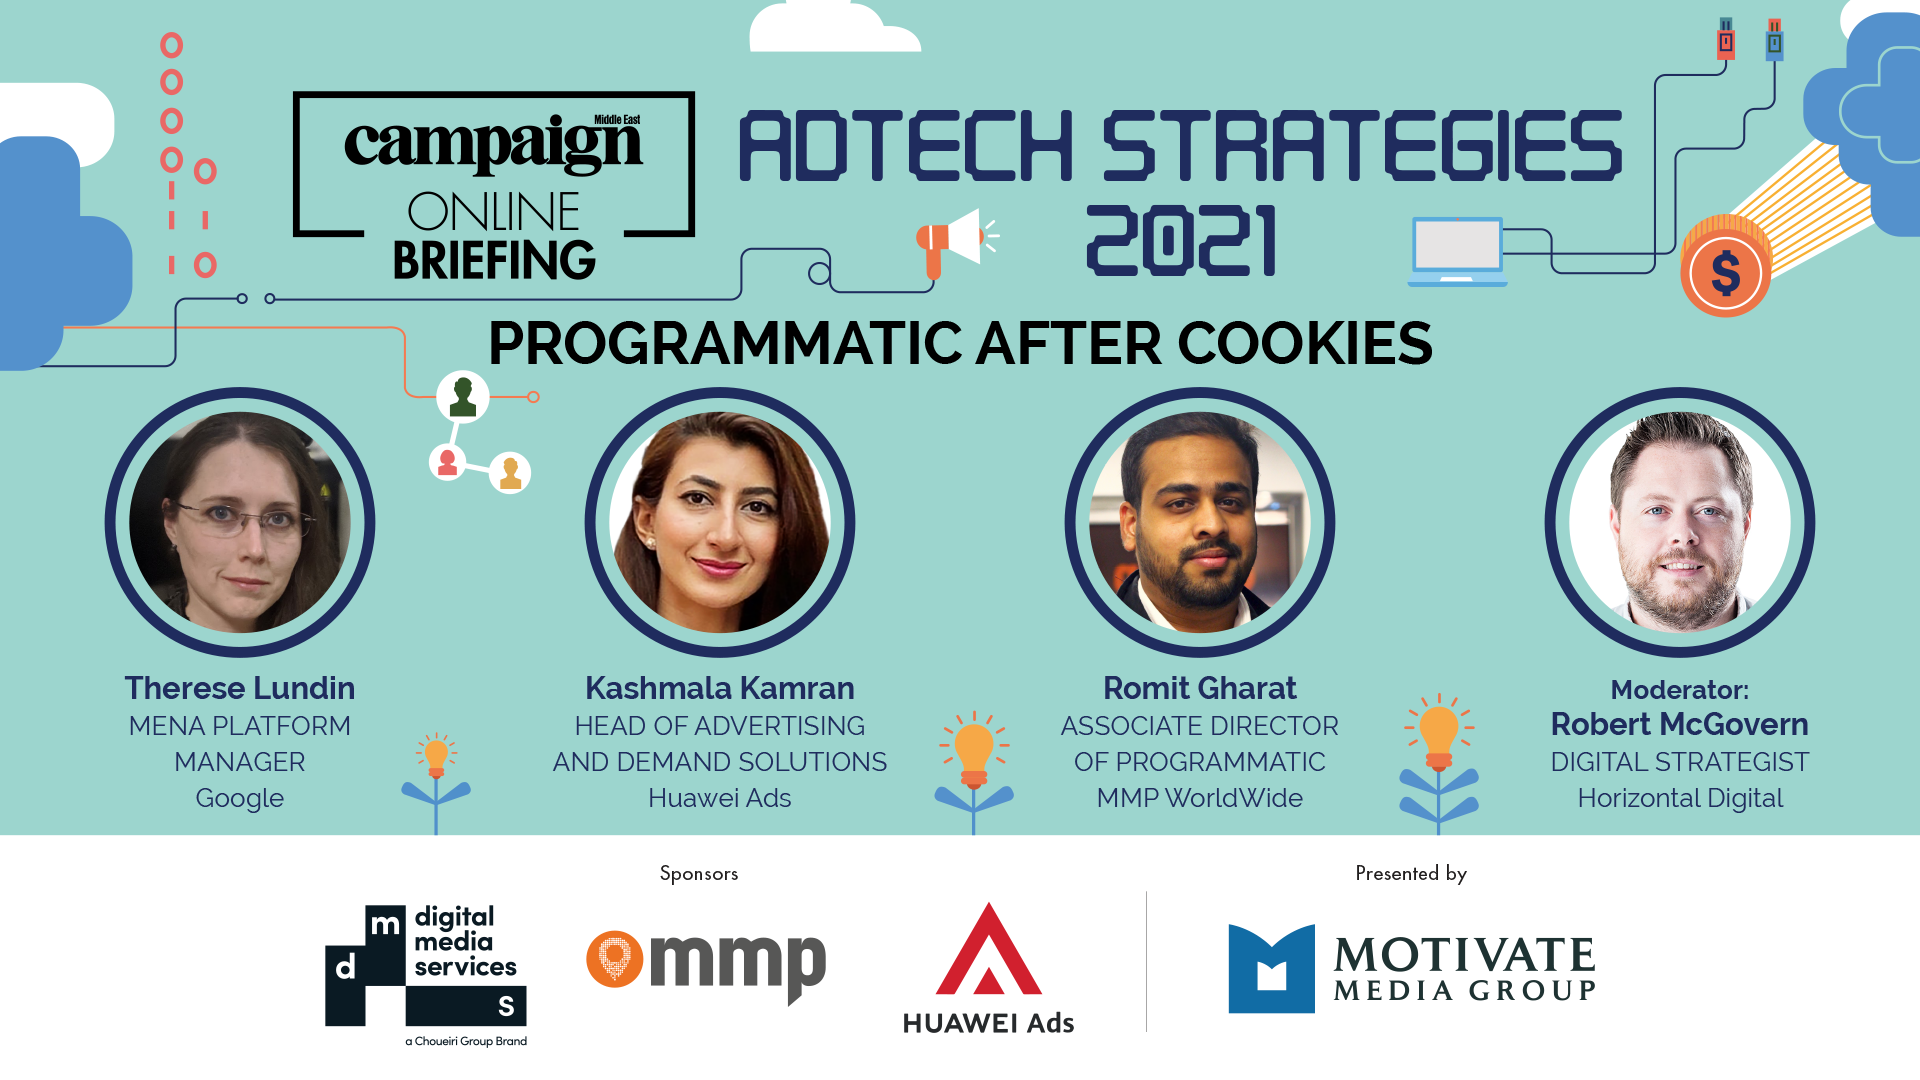 Moderating Campaign Middle East's AdTech Strategies 2021 Panel